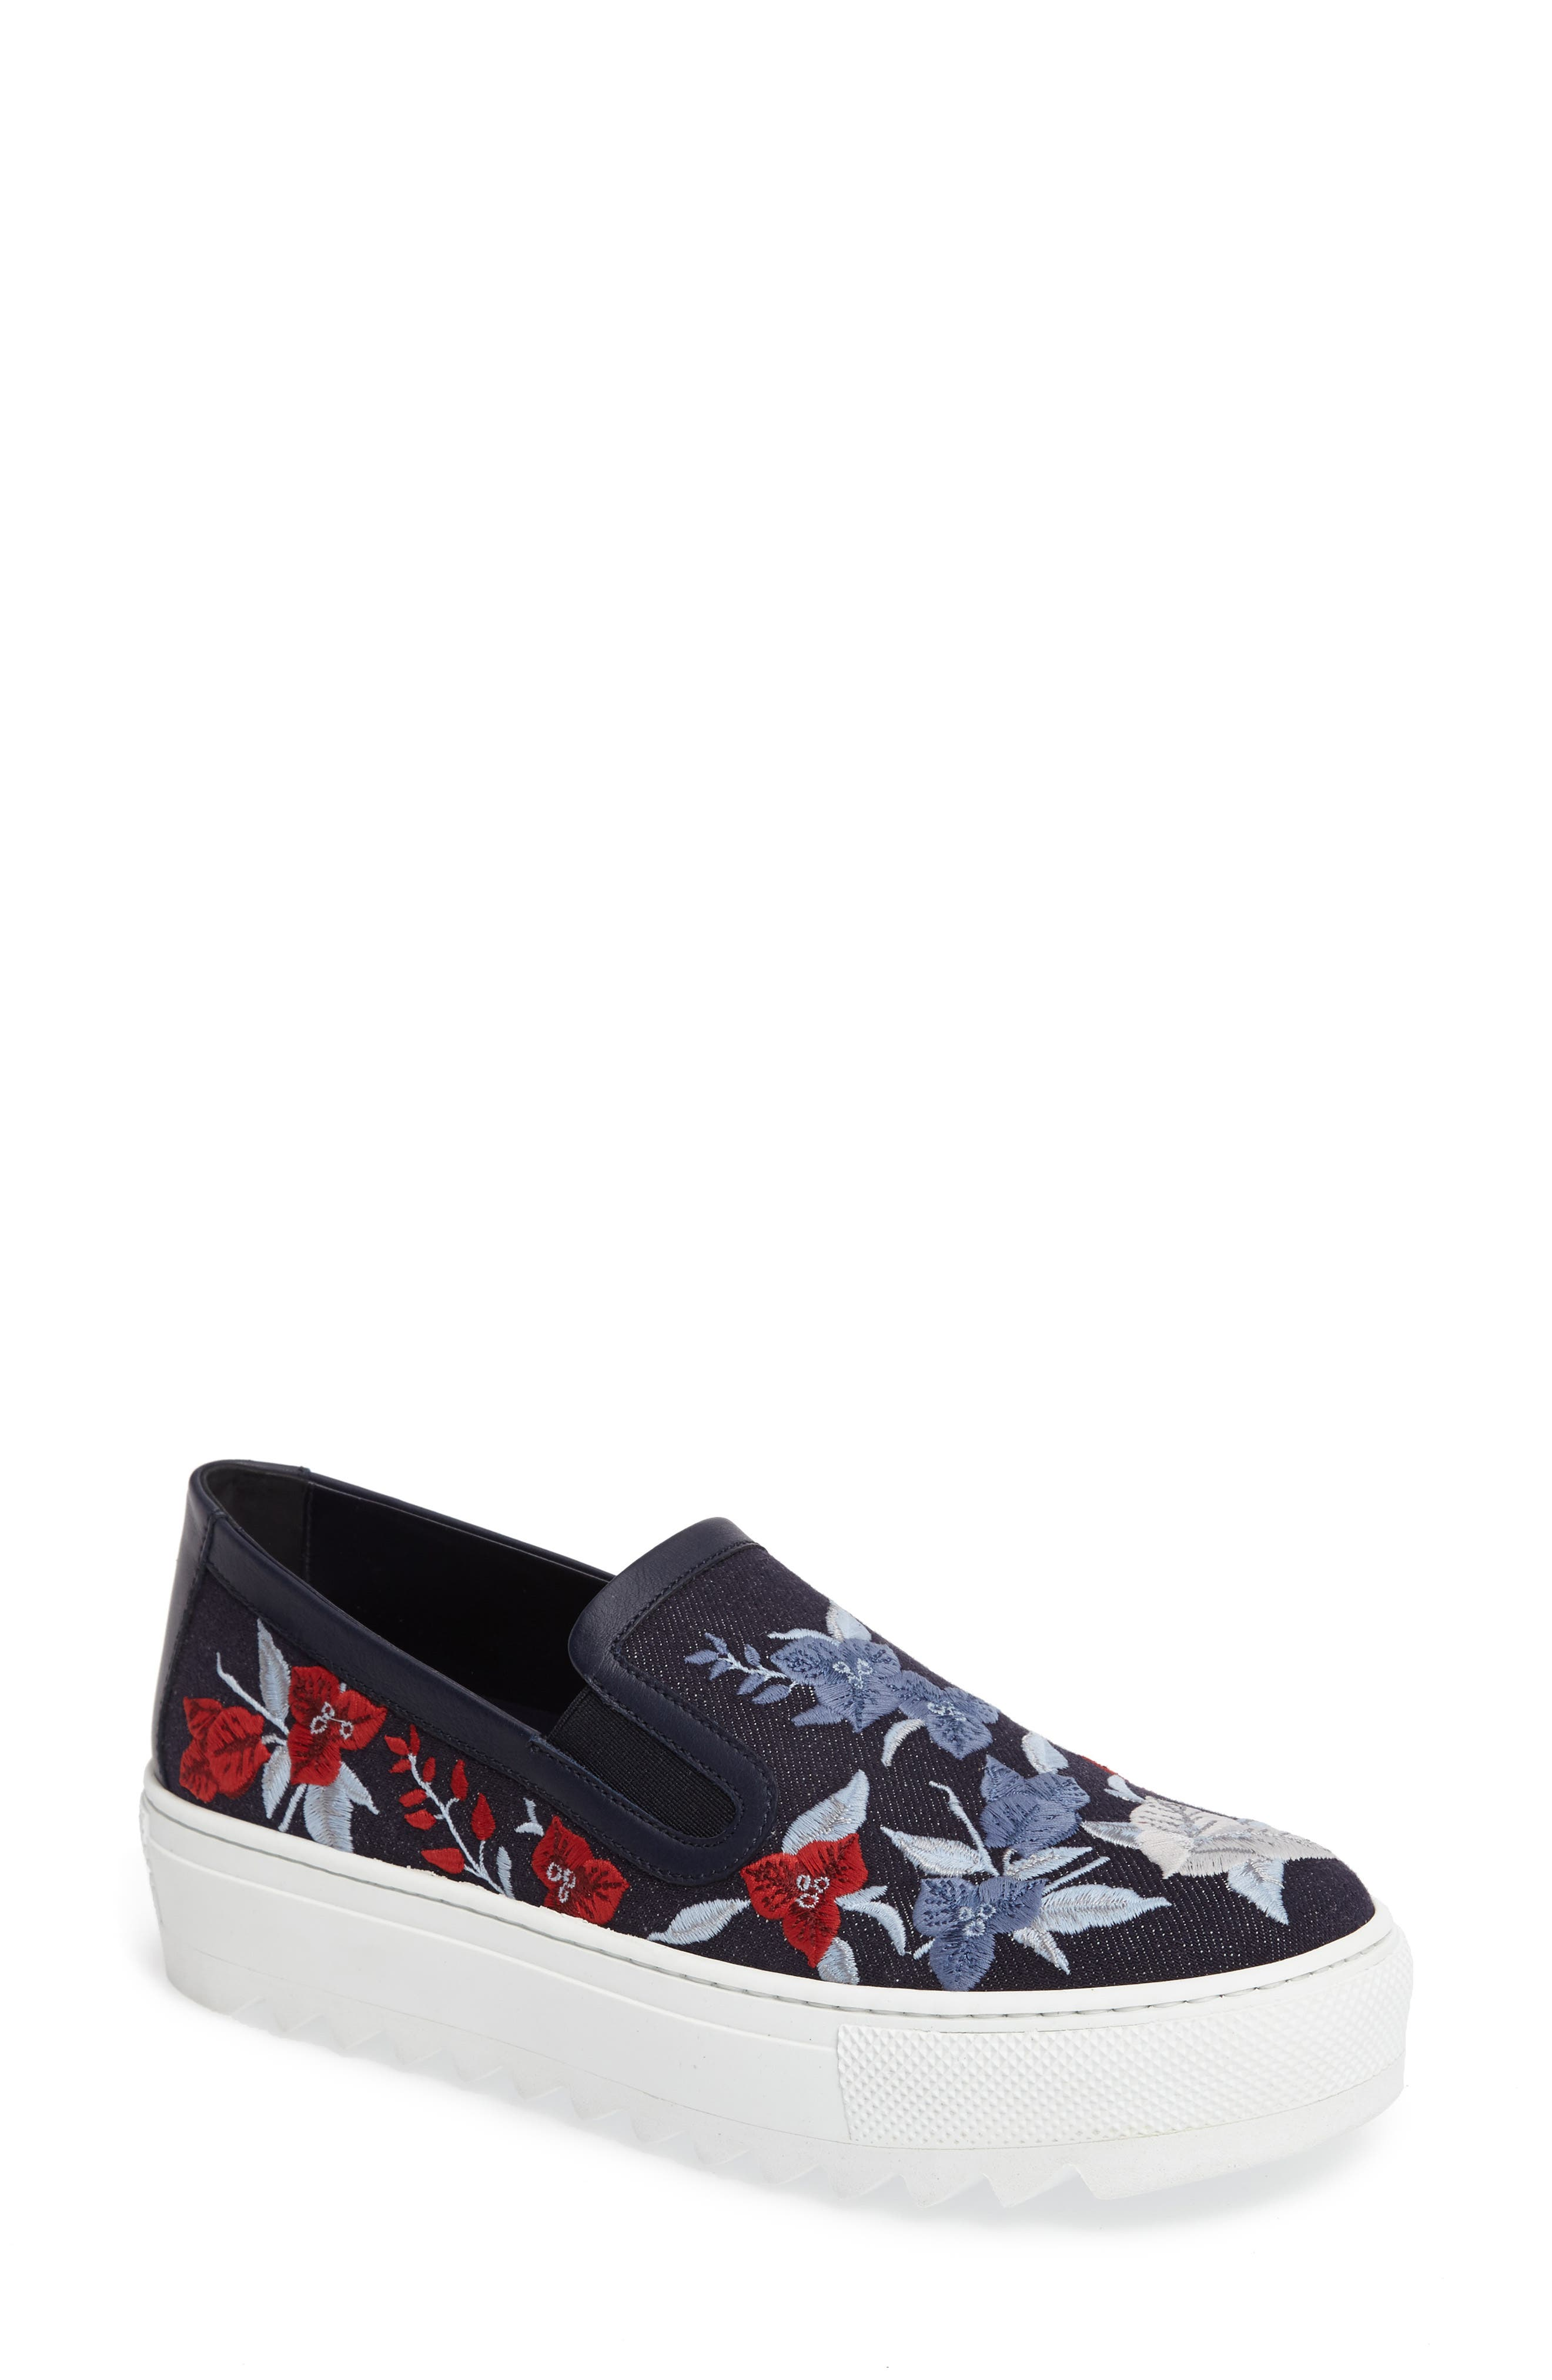 SALVATORE FERRAGAMO Elga Slip-On Sneaker